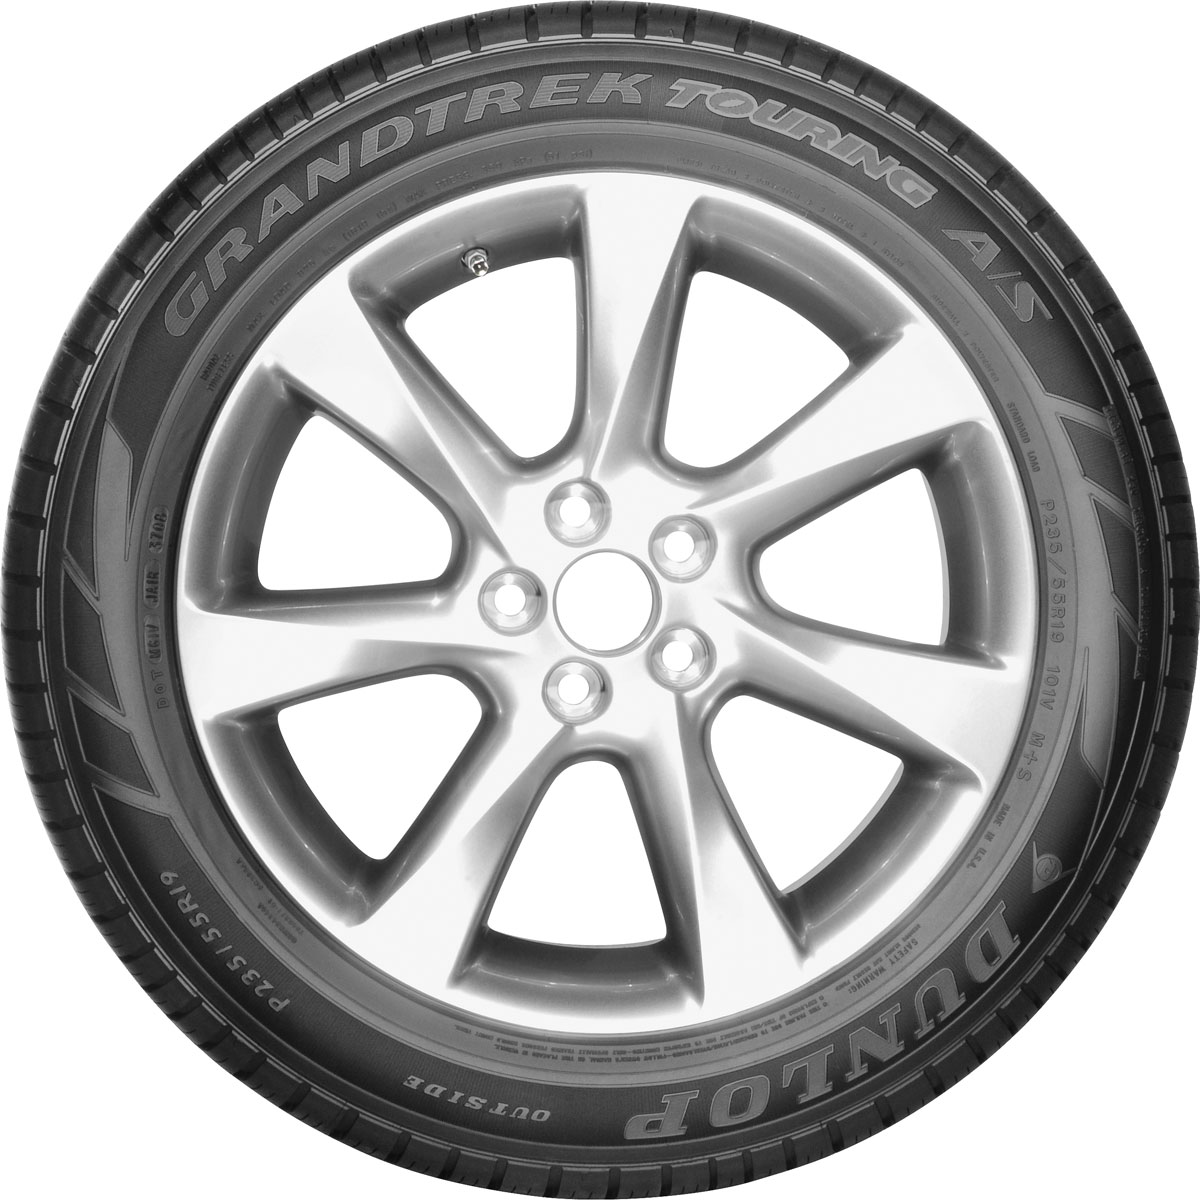 1200x1200 Crossover Tires Dunlop Tires